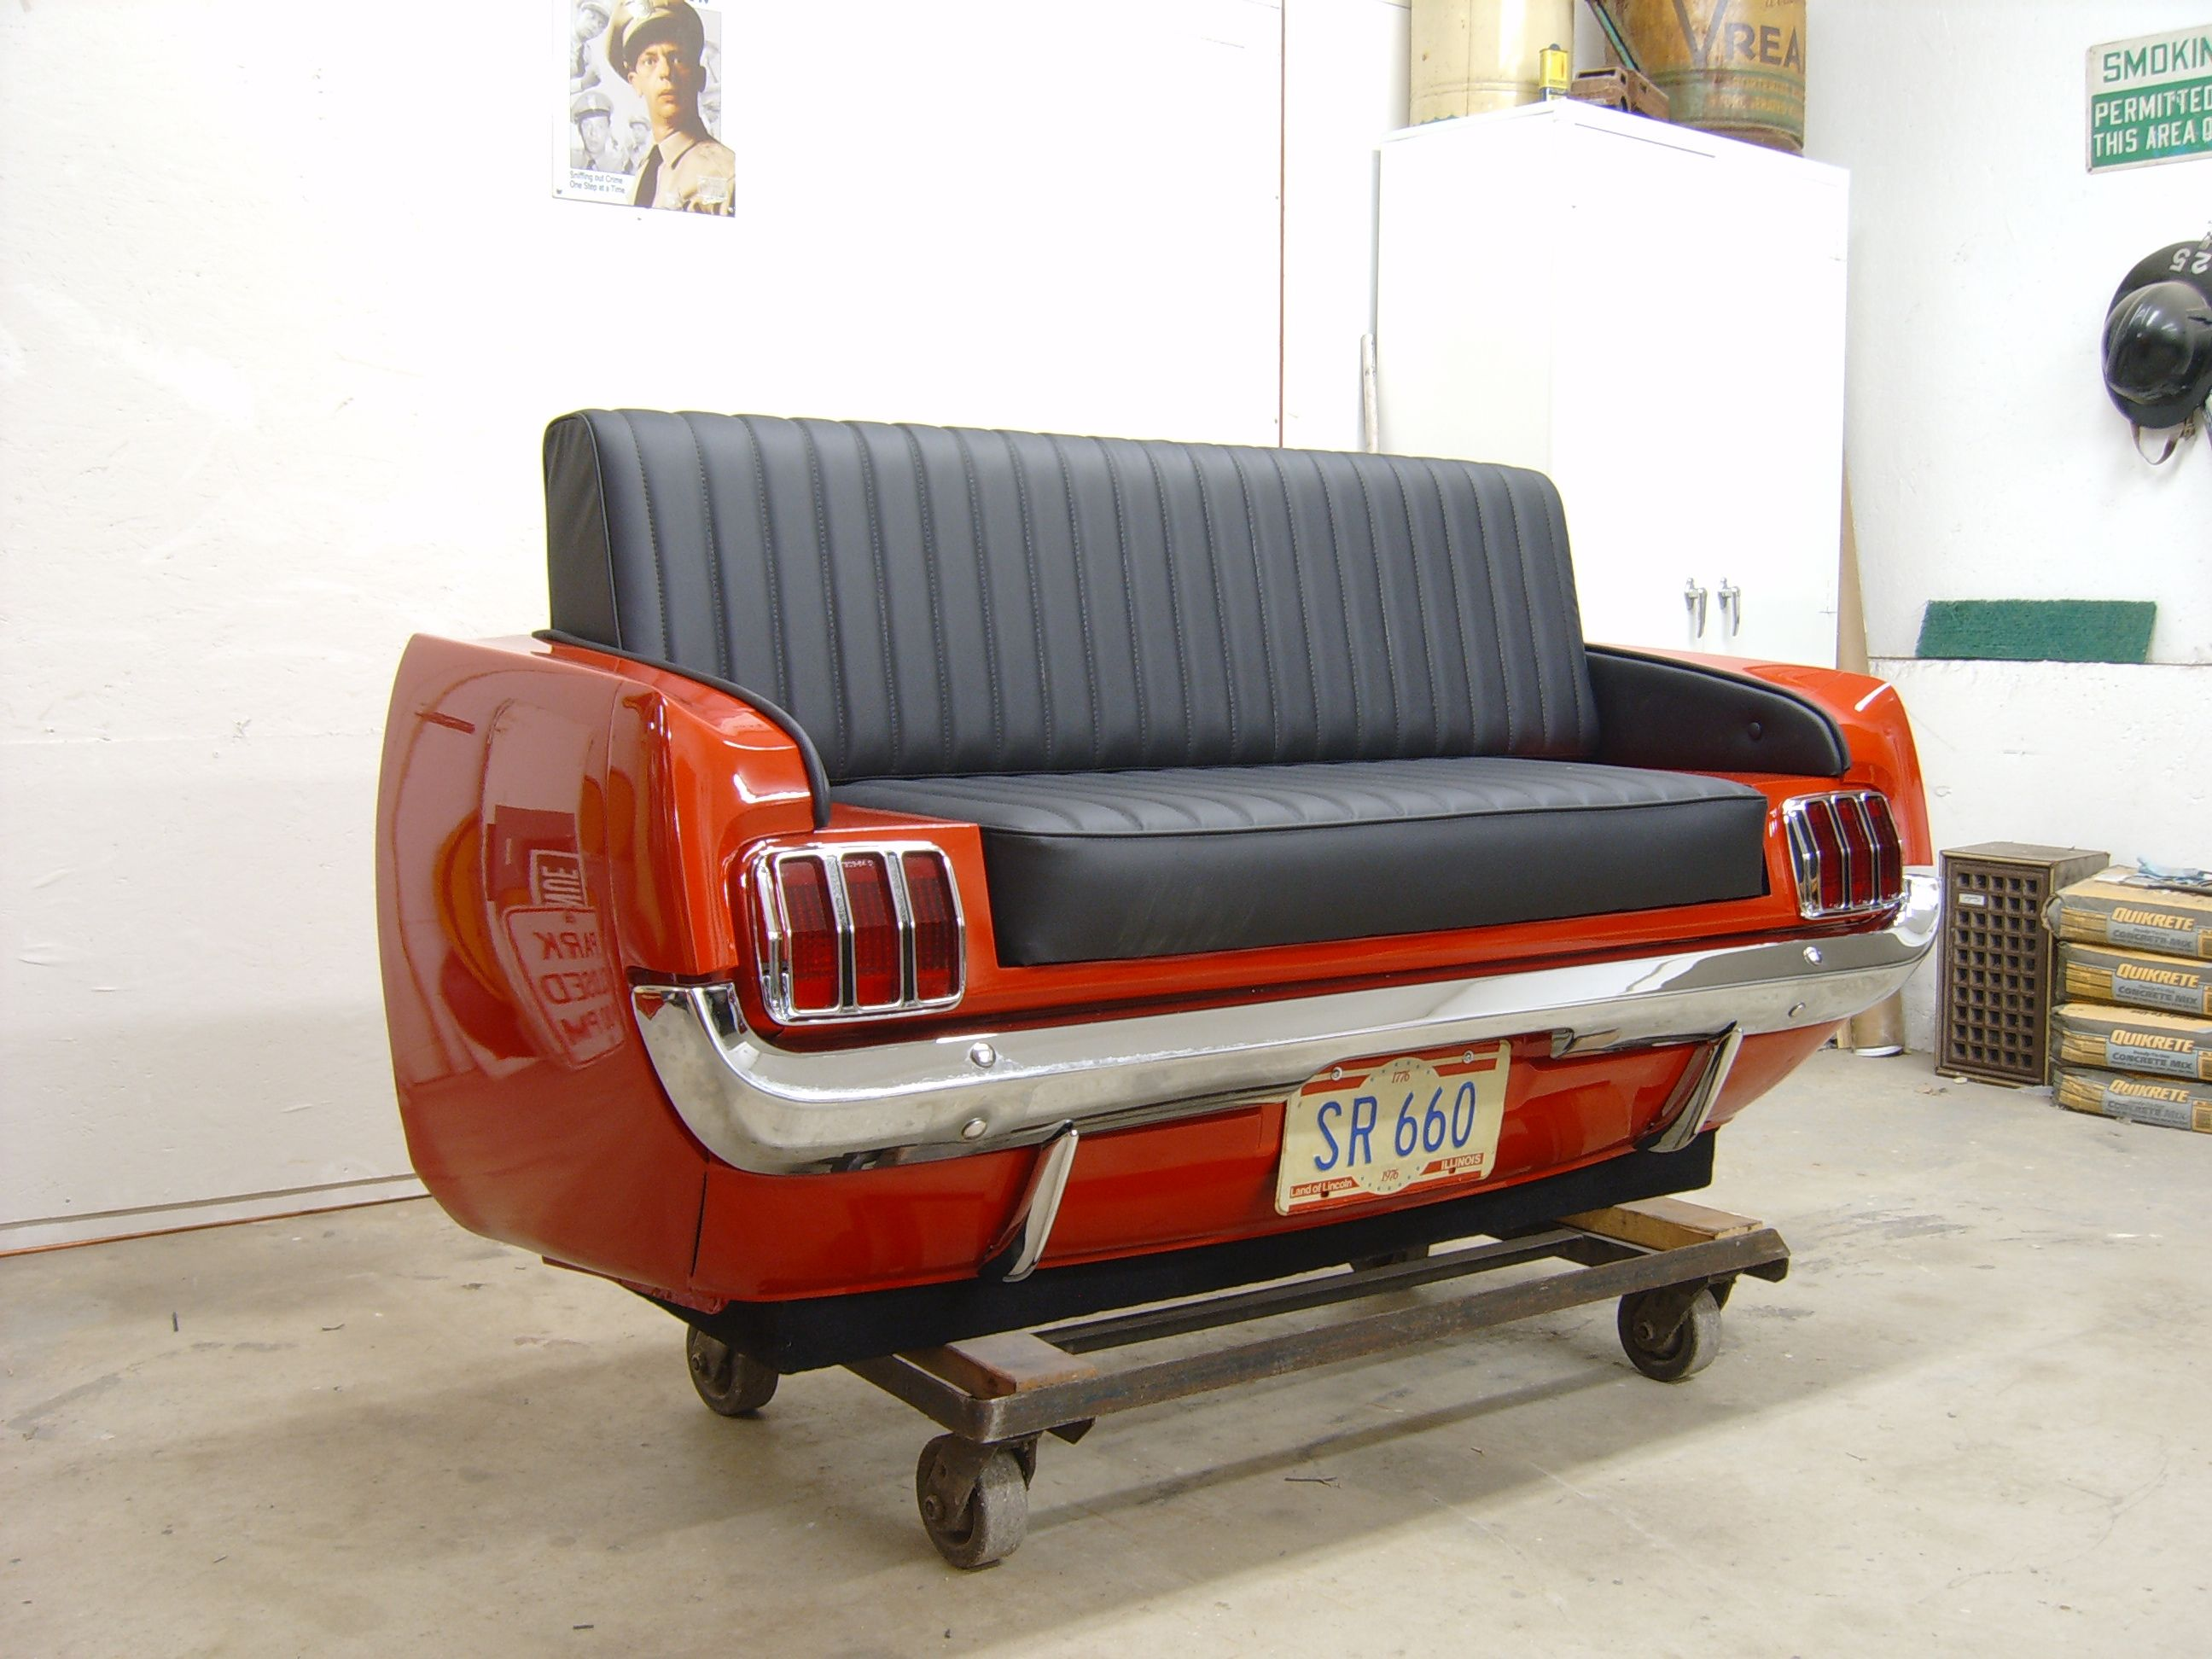 65 Ford Mustang Couch They Start At 3000 Bucks Ahhh